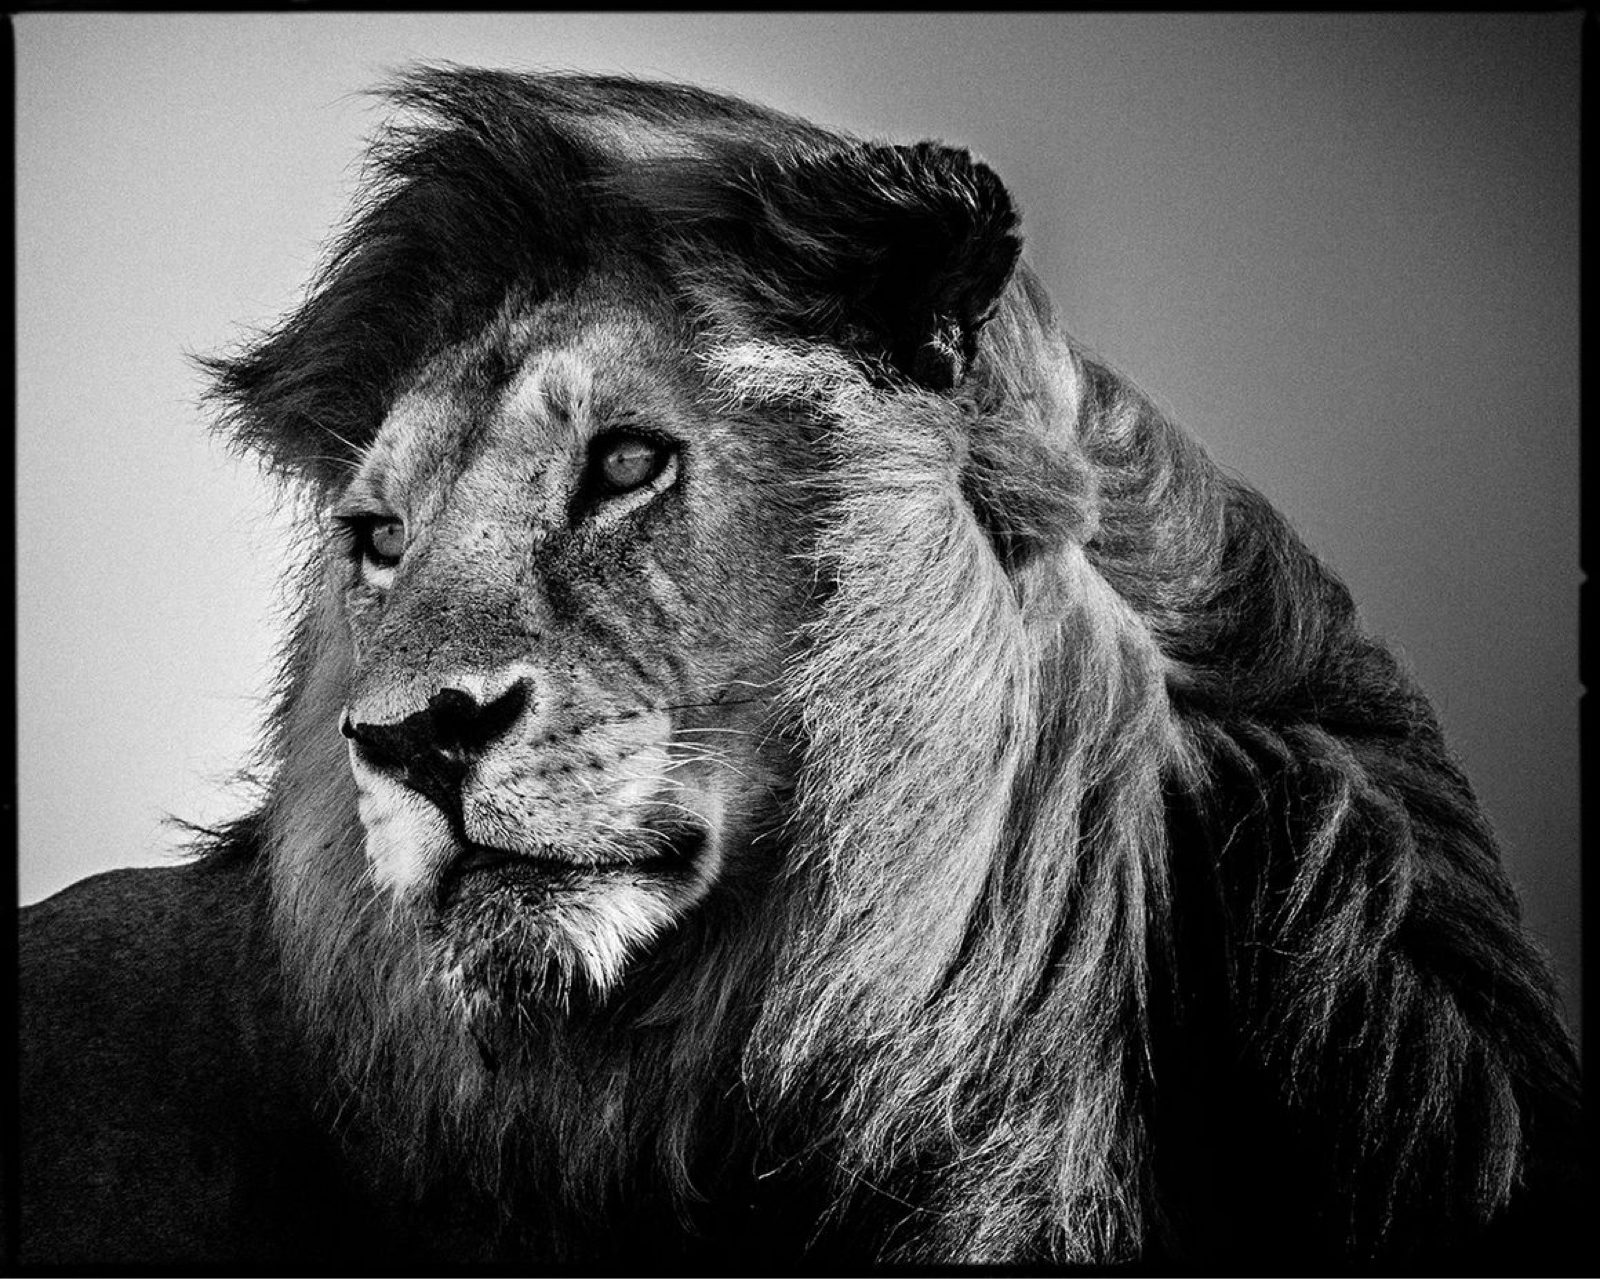 Lion In The Wind 2 by Laurent Baheux YELLOW KORNER